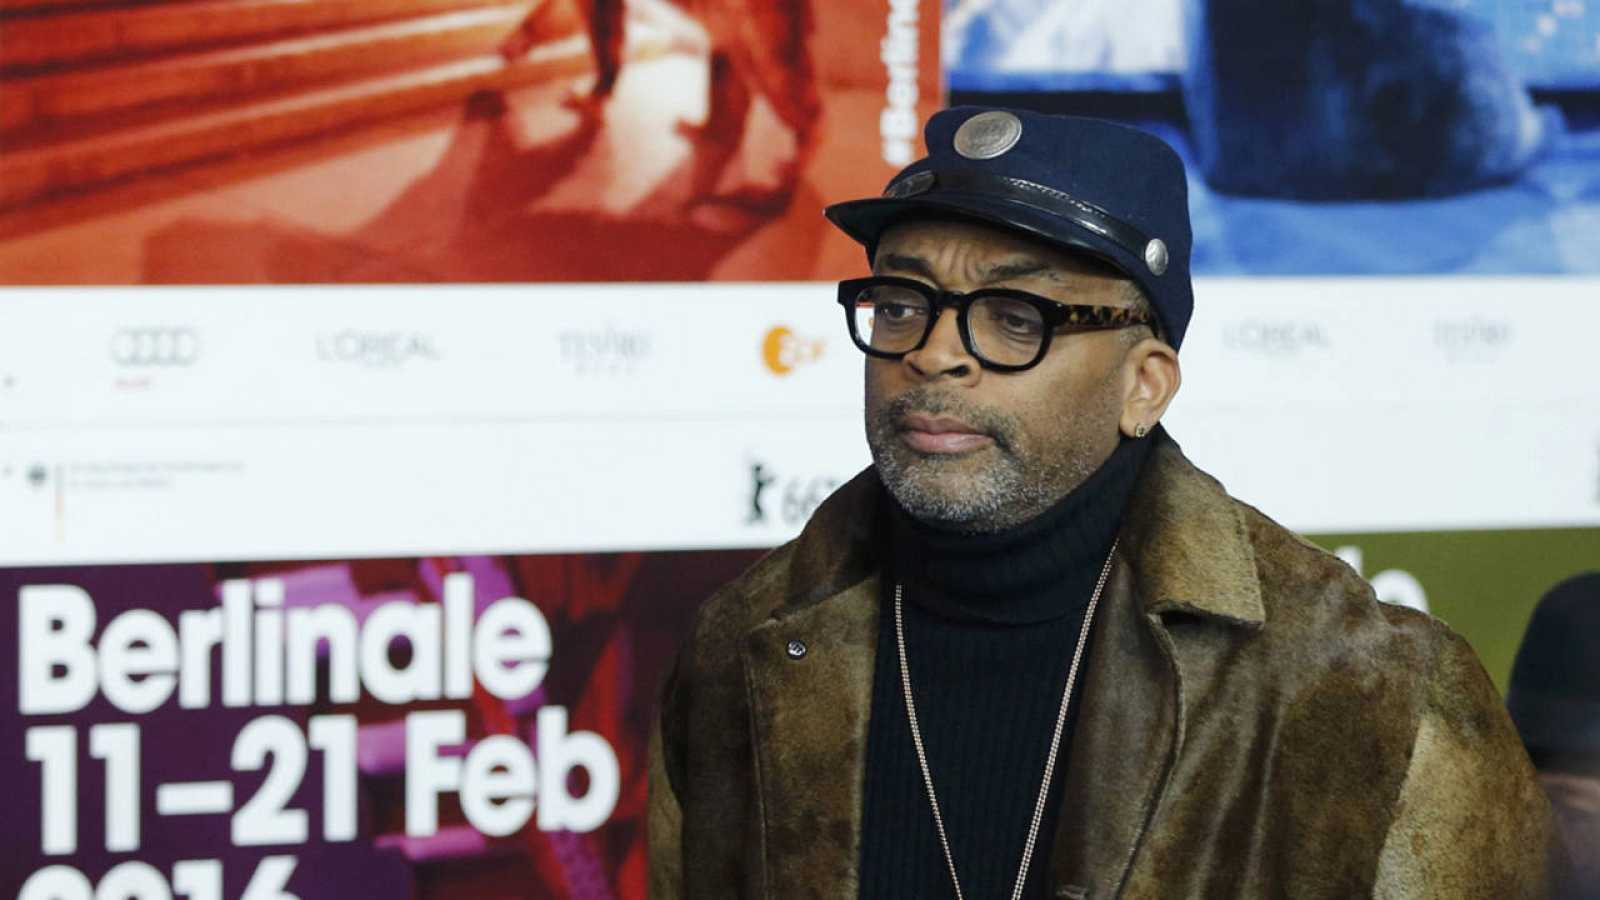 Director Lee attends news conference at 66th Berlinale International Film Festival